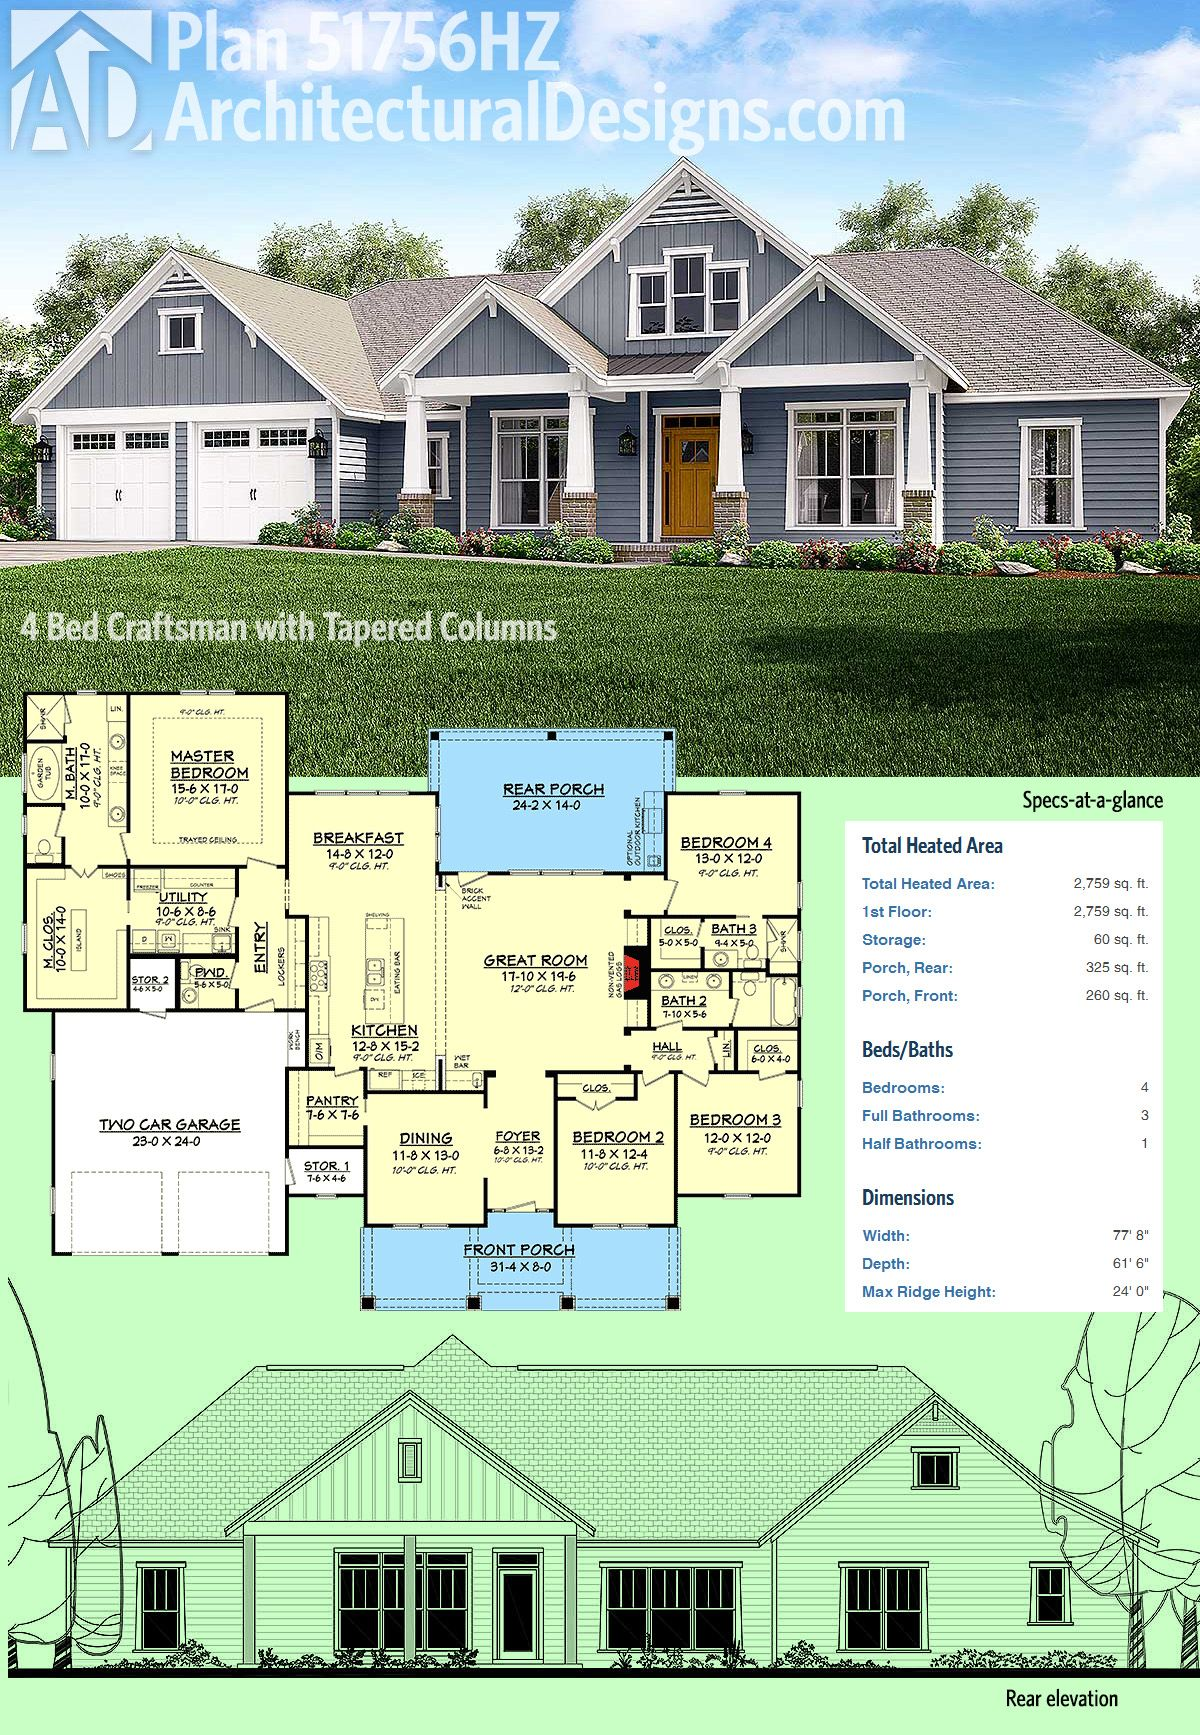 e568280821360432b4a533fae2156cd3 Top Result 52 Elegant House Plans with Finished Basement